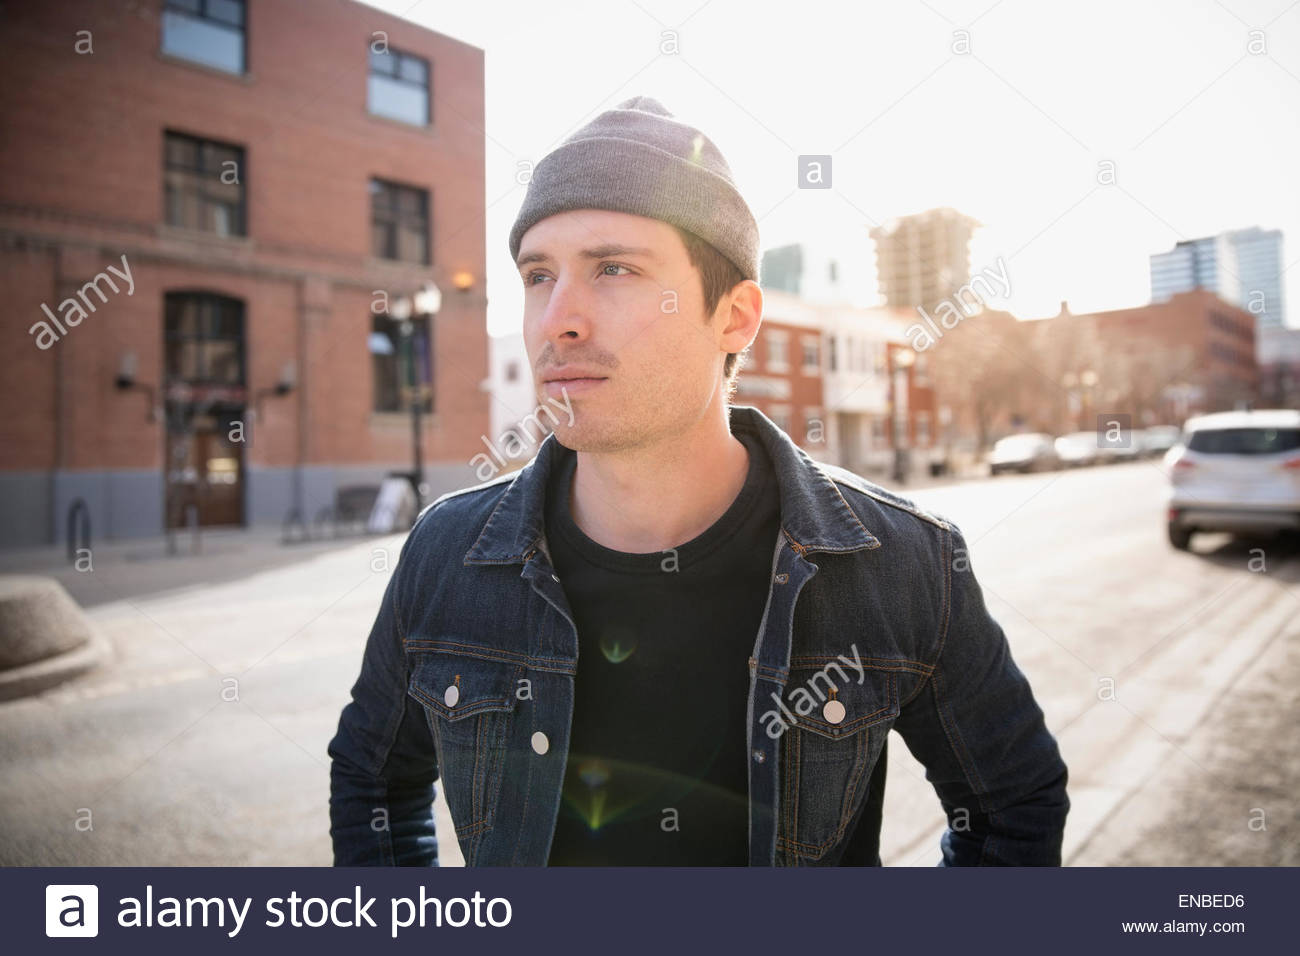 Serious man looking away denim jacket urban street - Stock Image